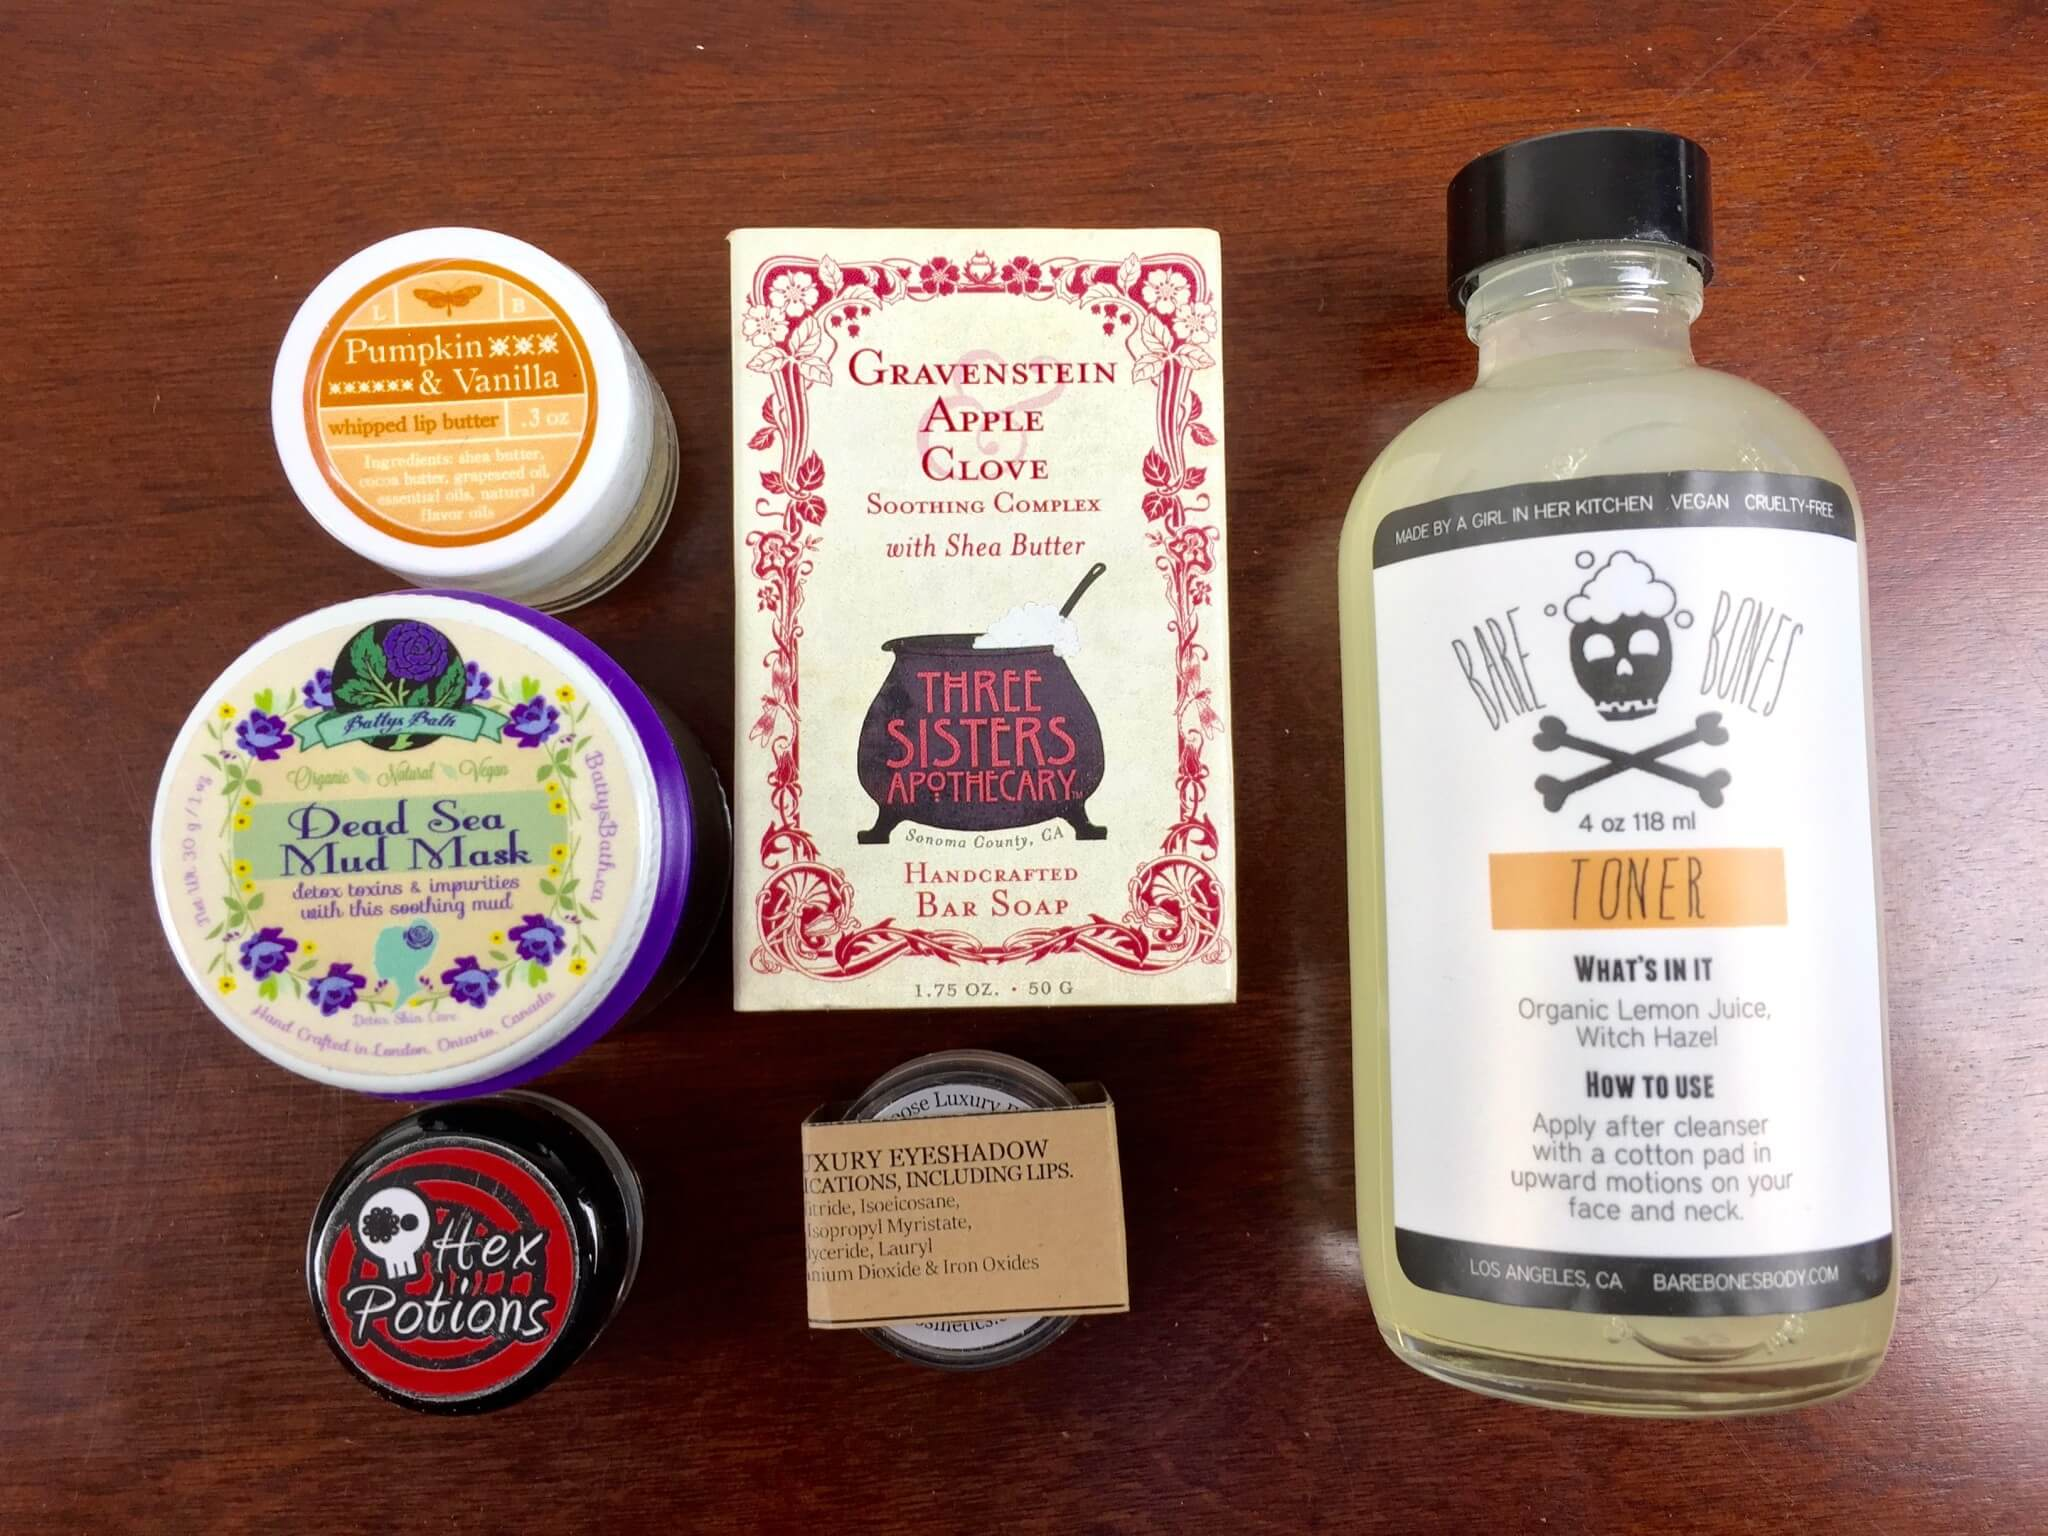 October 2015 Terra Bella Box Review & Coupons – Natural Beauty Subscription Box